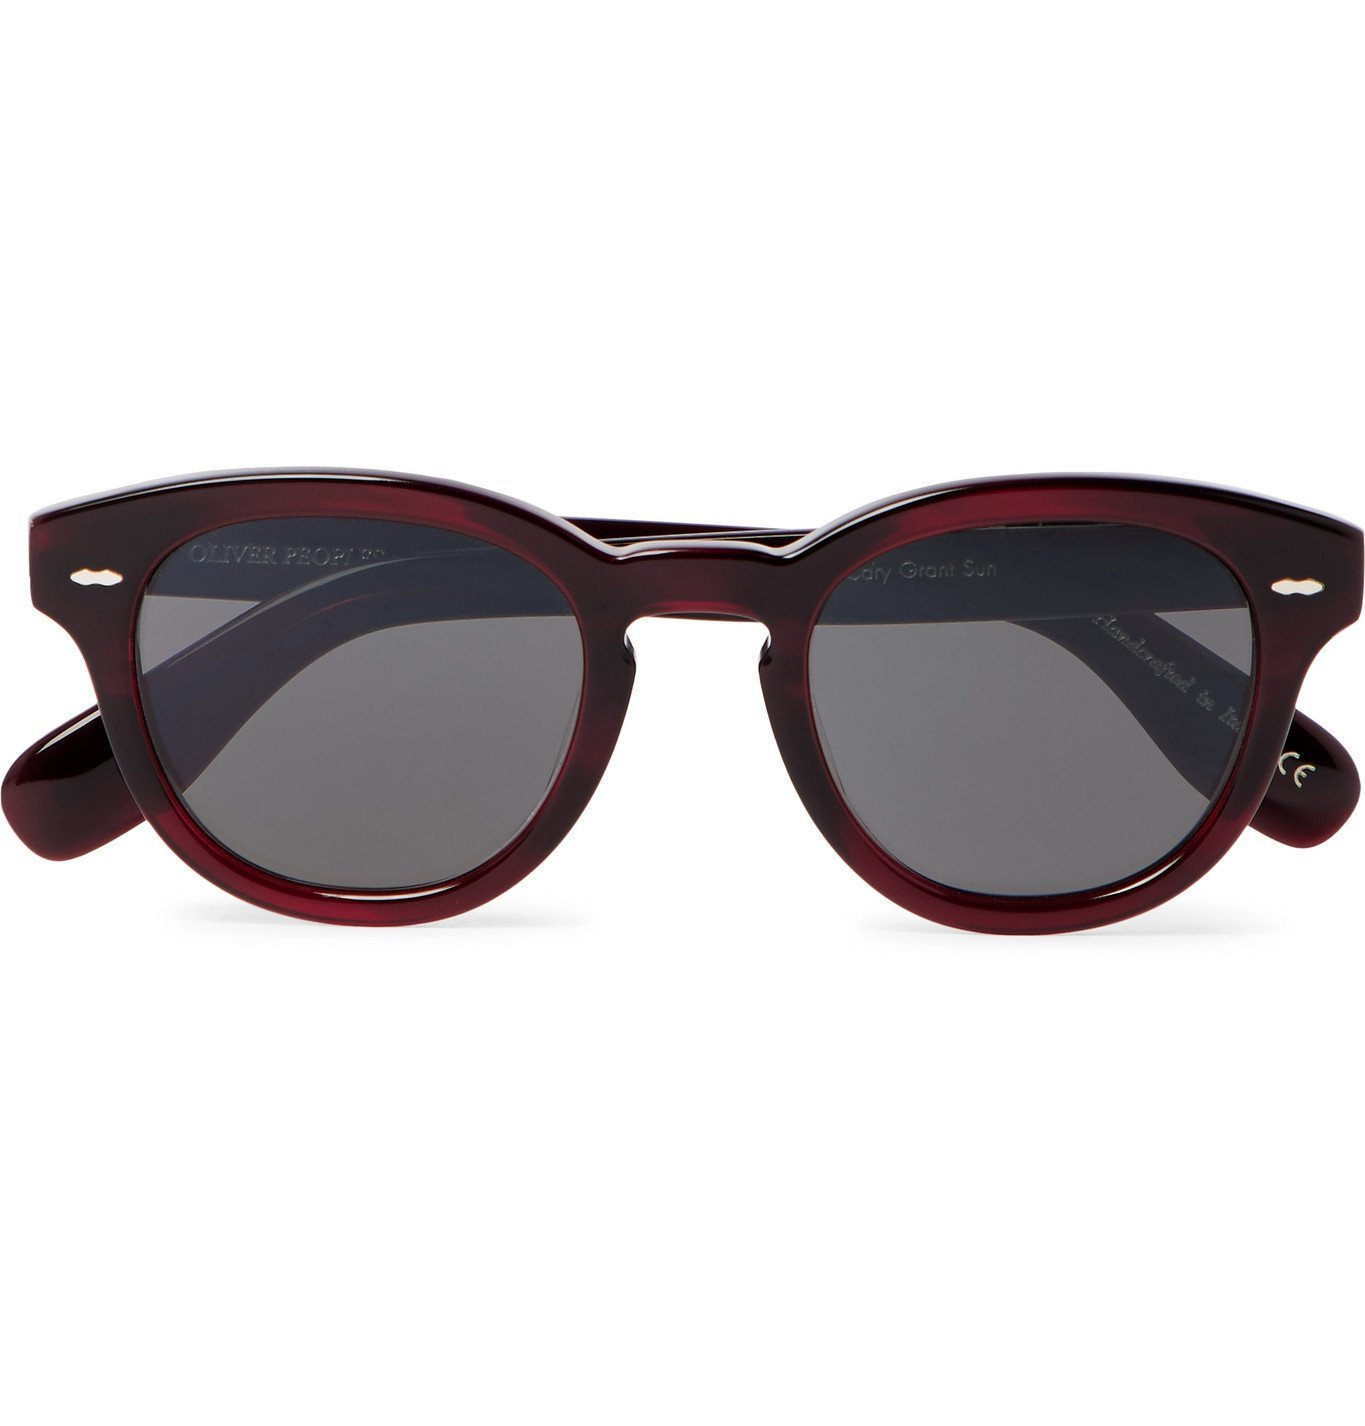 Photo: OLIVER PEOPLES - Cary Grant Sun Round-Frame Acetate Sunglasses - Burgundy